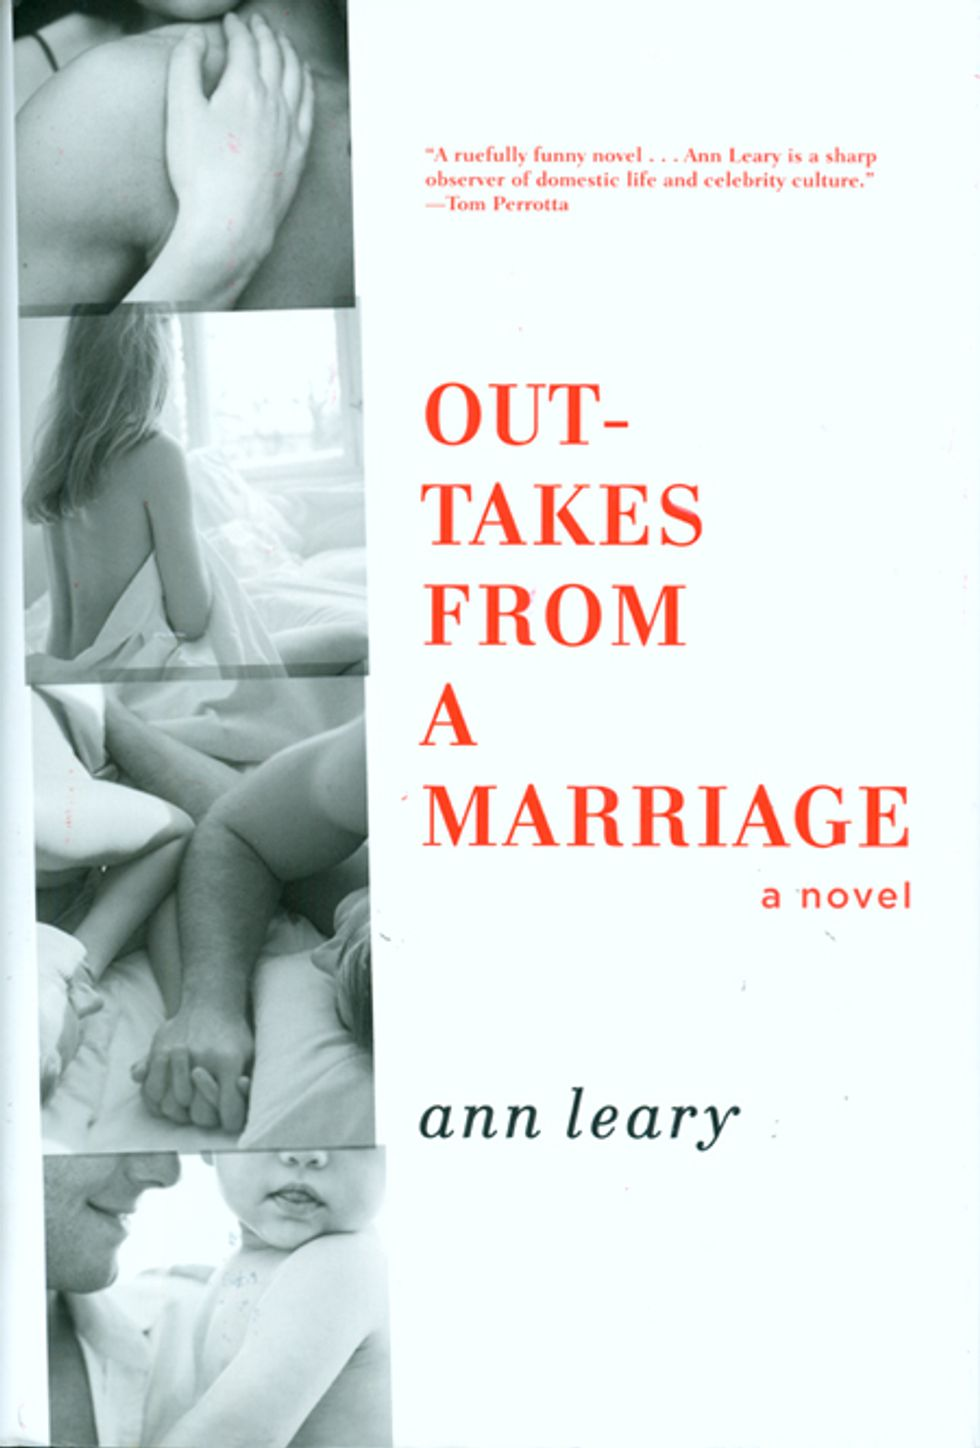 Books on PAPERMAG: Ann Leary's Outtakes from a Marriage